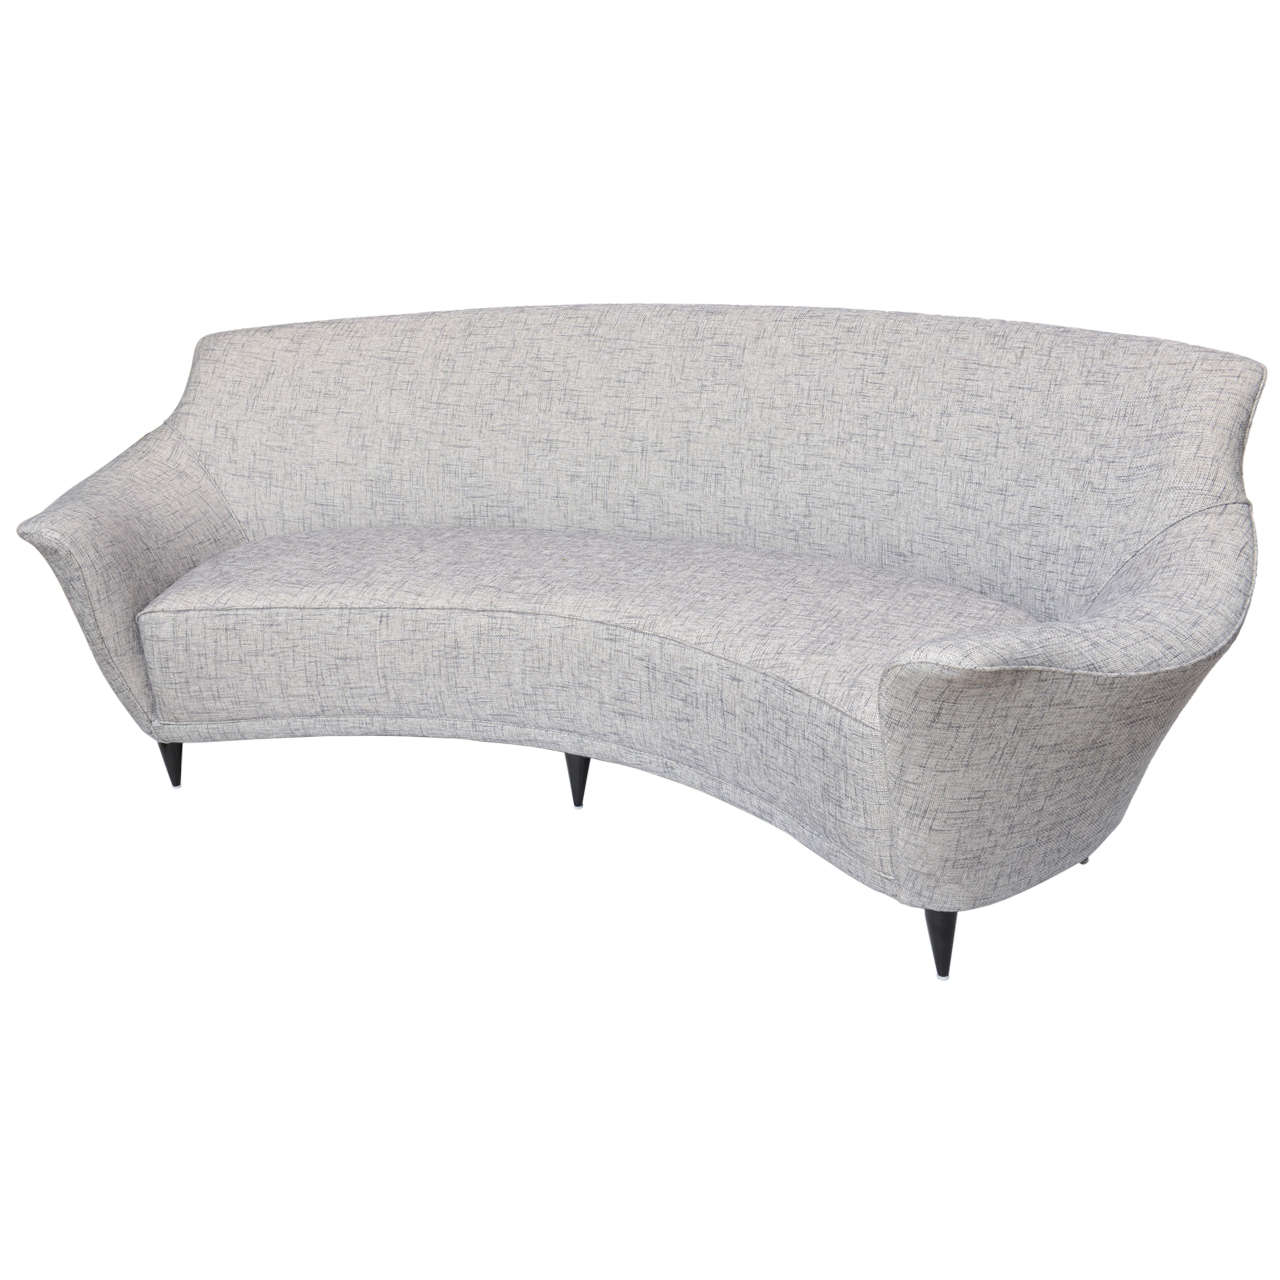 Ico Parisi Curved Back Sofa Manufactured By Ariberto Colombo For